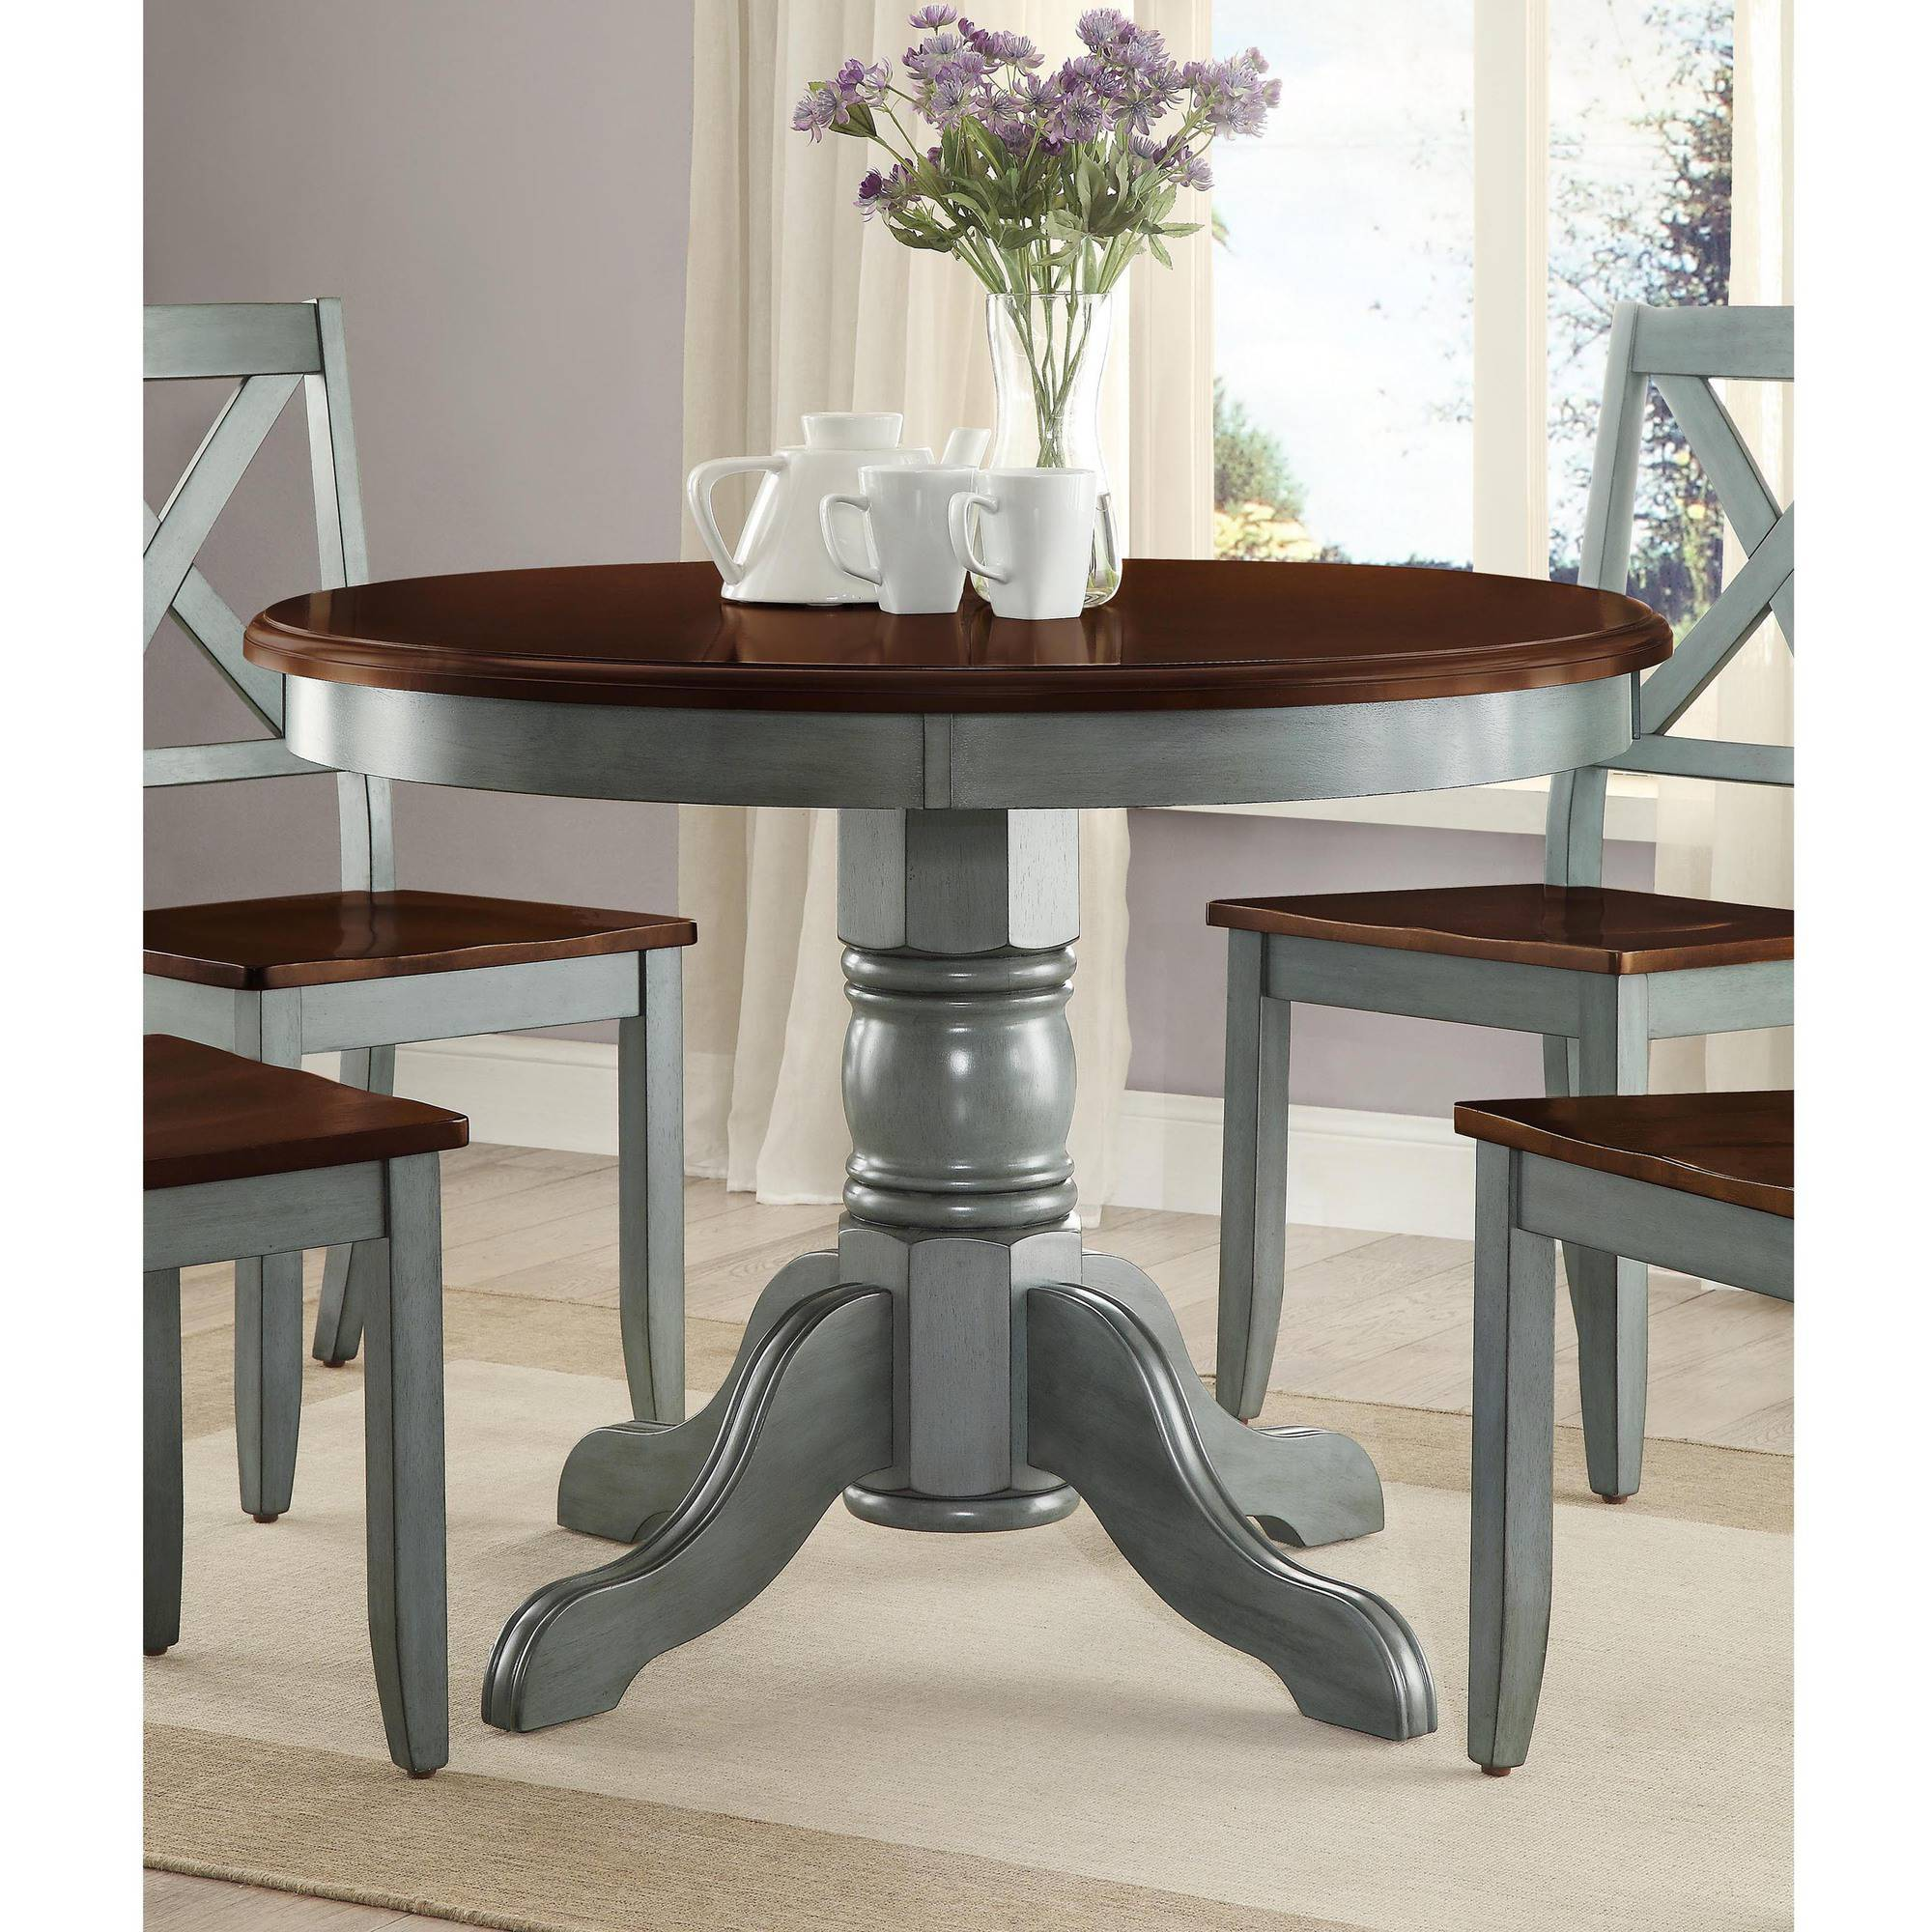 modern farmhouse table nantucket room sets design ideas breeze for set style wood dining spaces contemporary small best elegant discontin formal centerpieces tables accent full